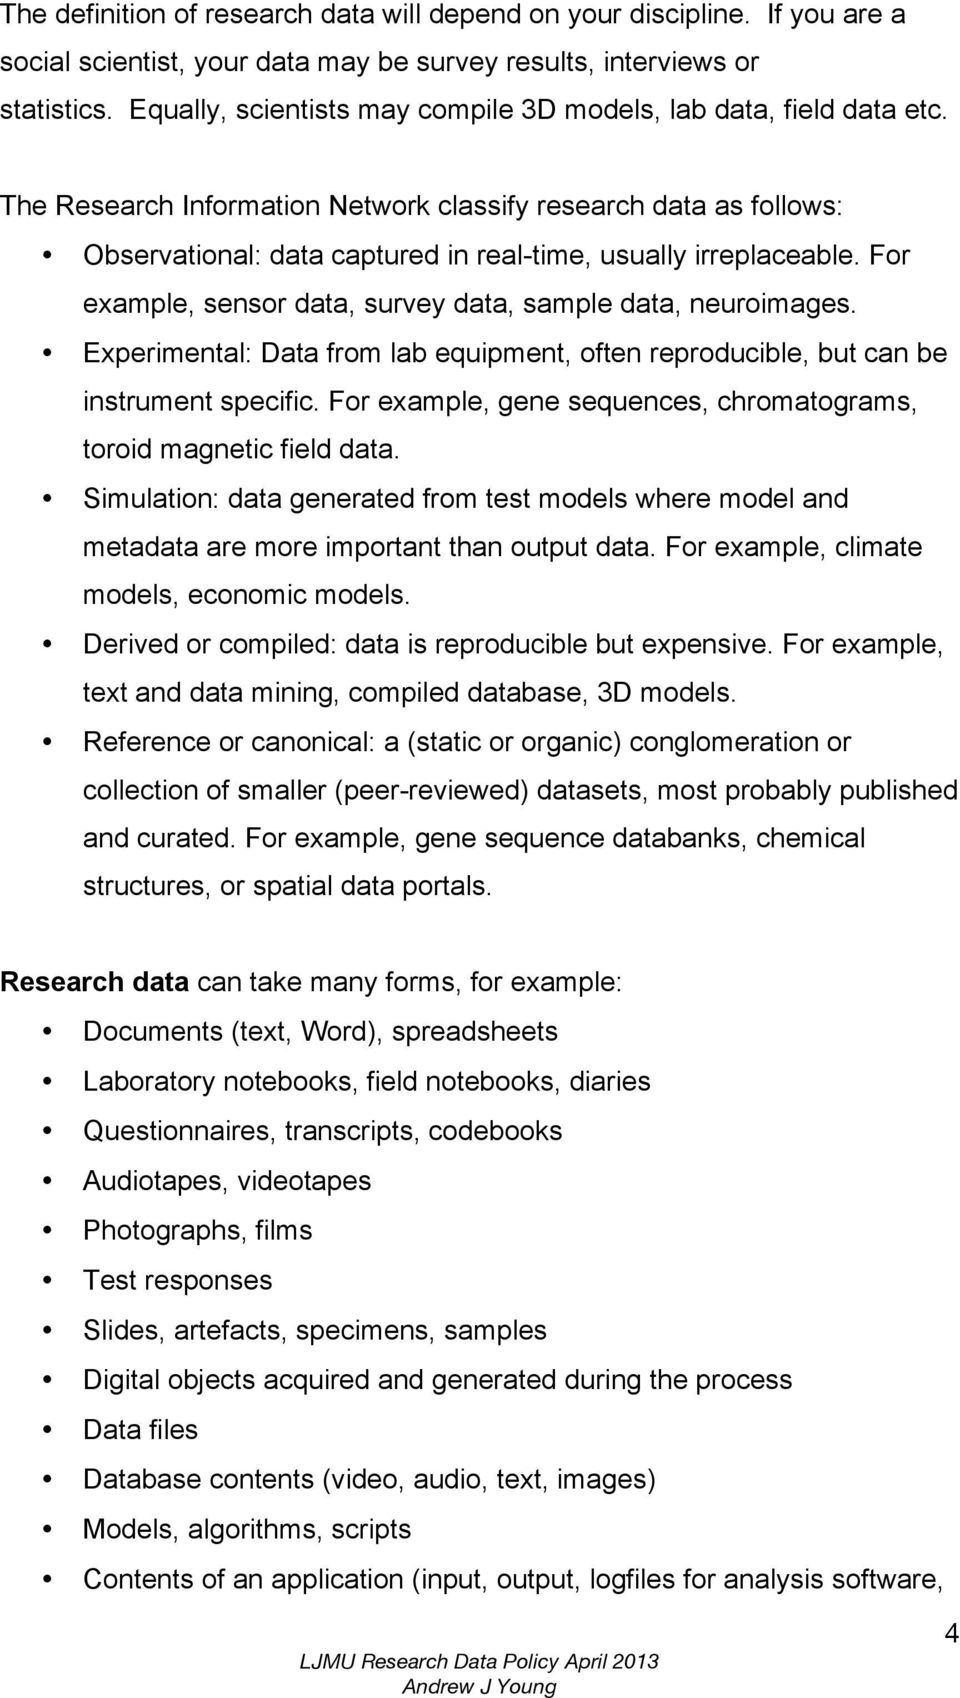 The Research Information Network classify research data as follows: Observational: data captured in real-time, usually irreplaceable. For example, sensor data, survey data, sample data, neuroimages.